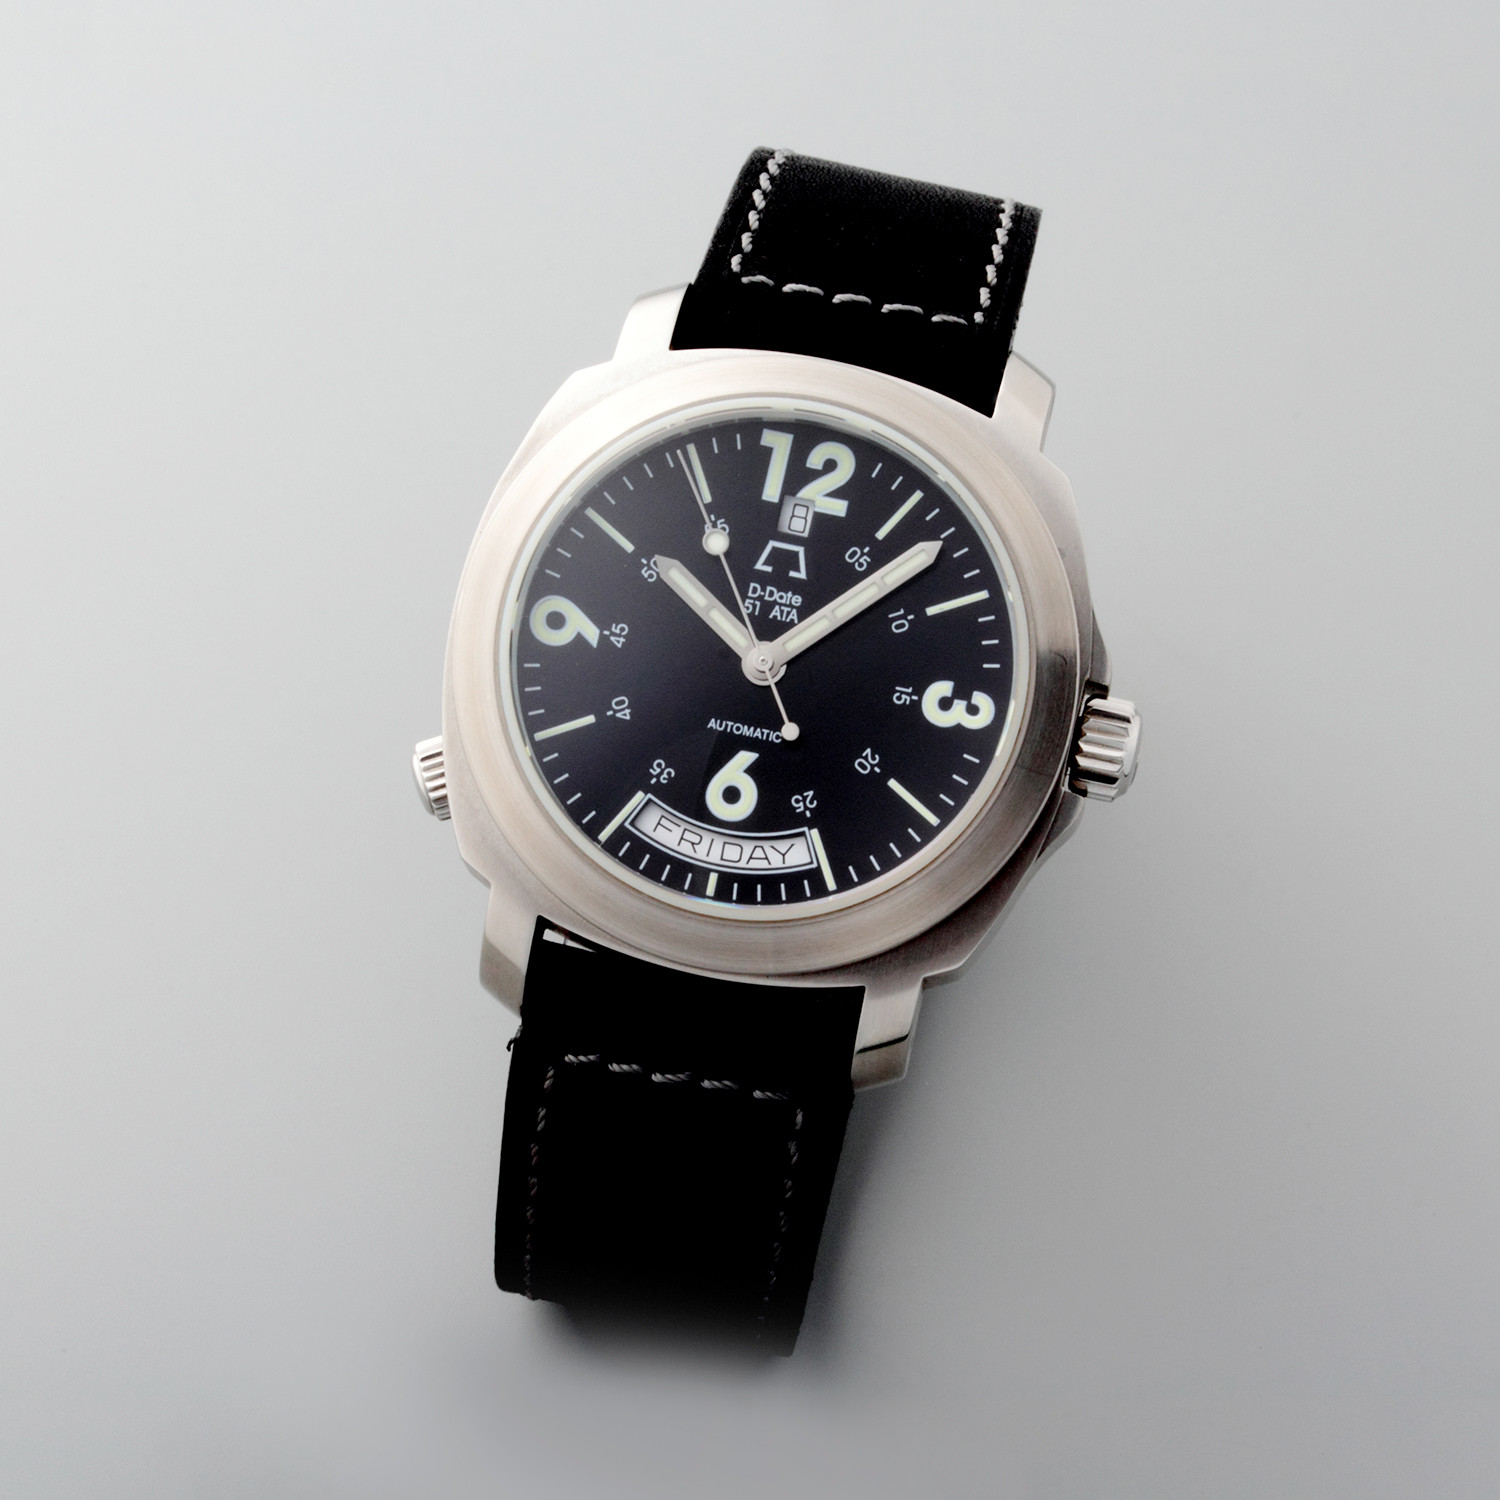 Pre-owned Anonimo watches for sale - Buy luxury watches ...